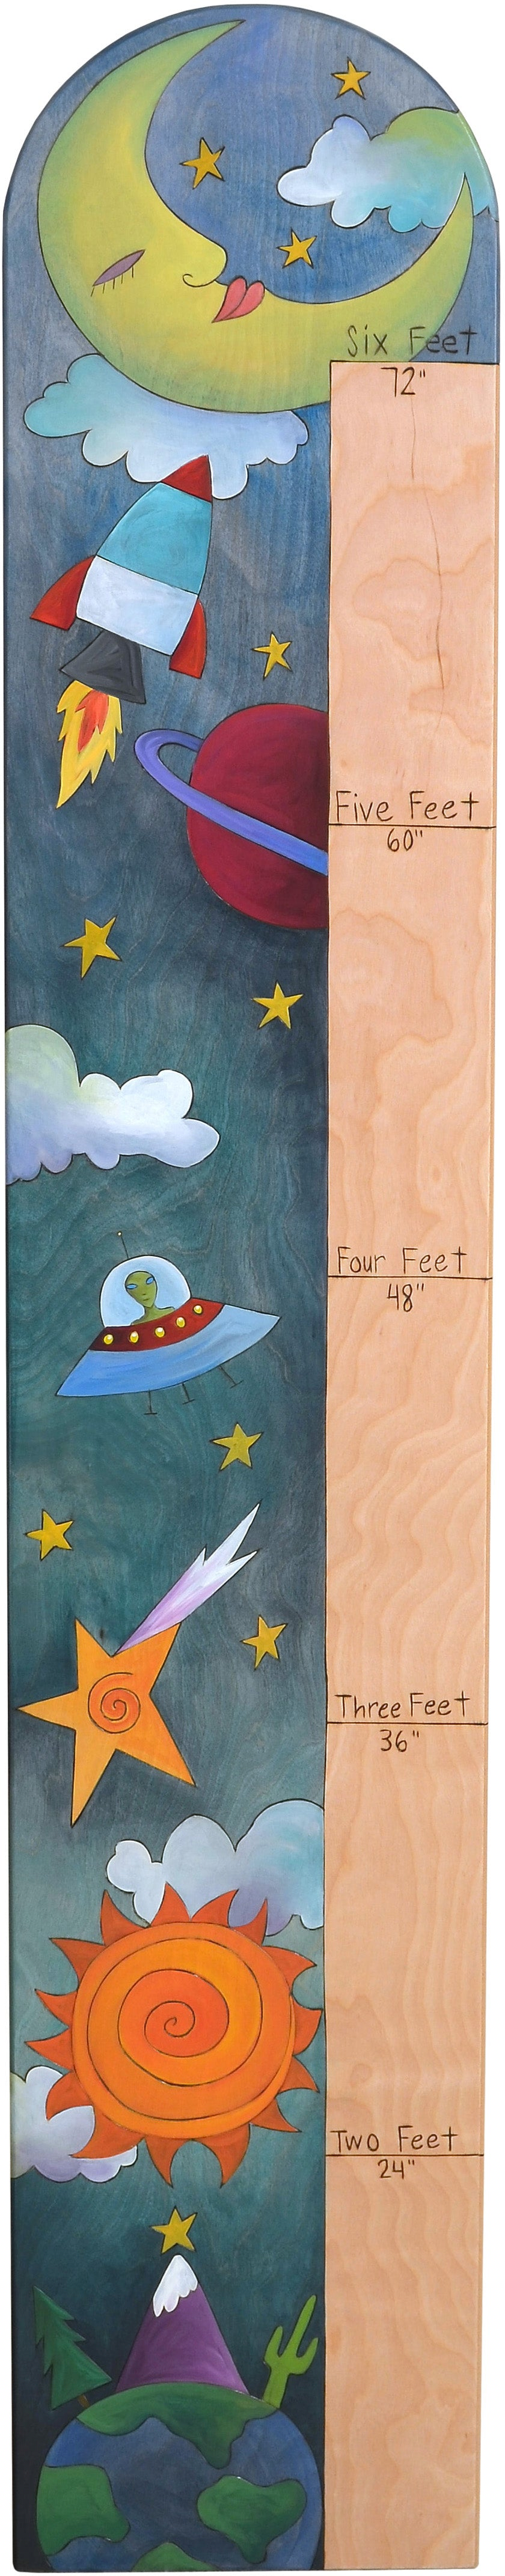 Everlasting Growth Chart